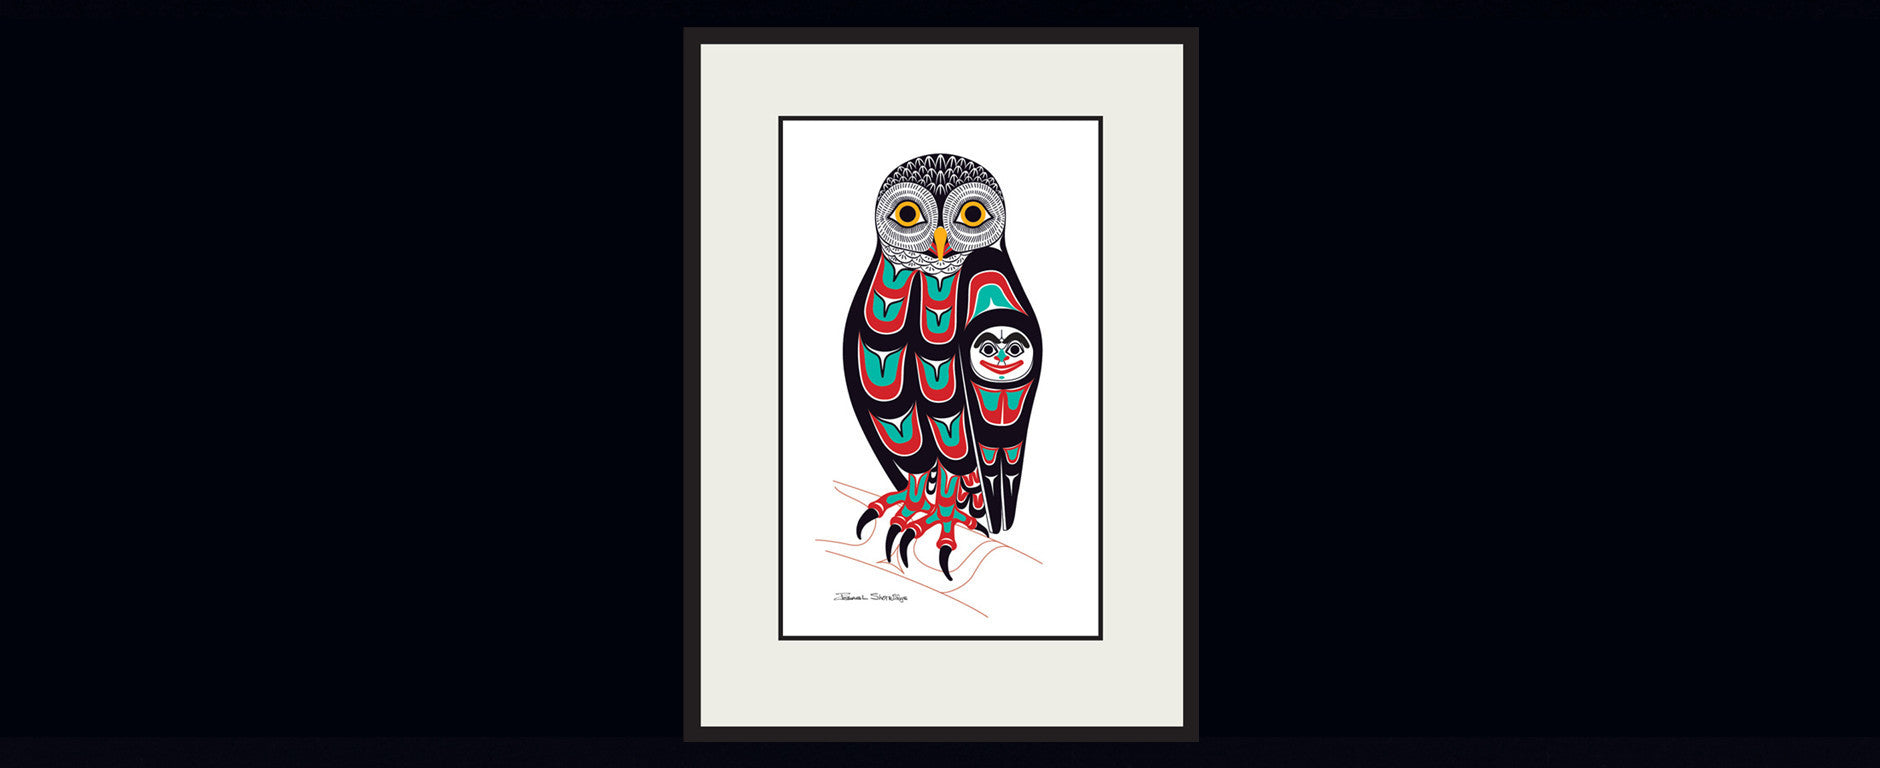 The Owl Art Print Limited Edition Giclee